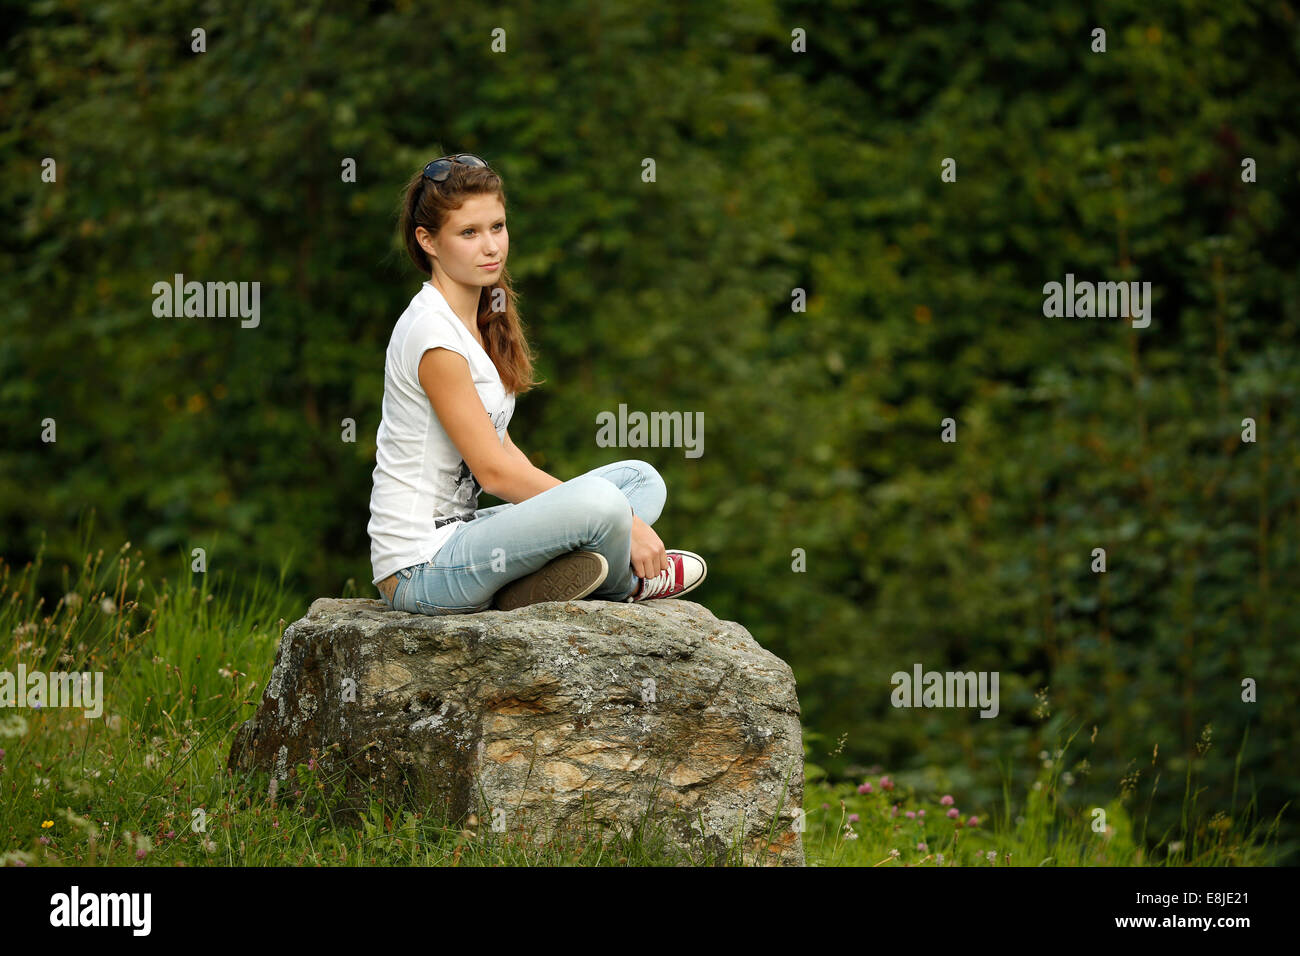 Young girl siting on a stone. - Stock Image